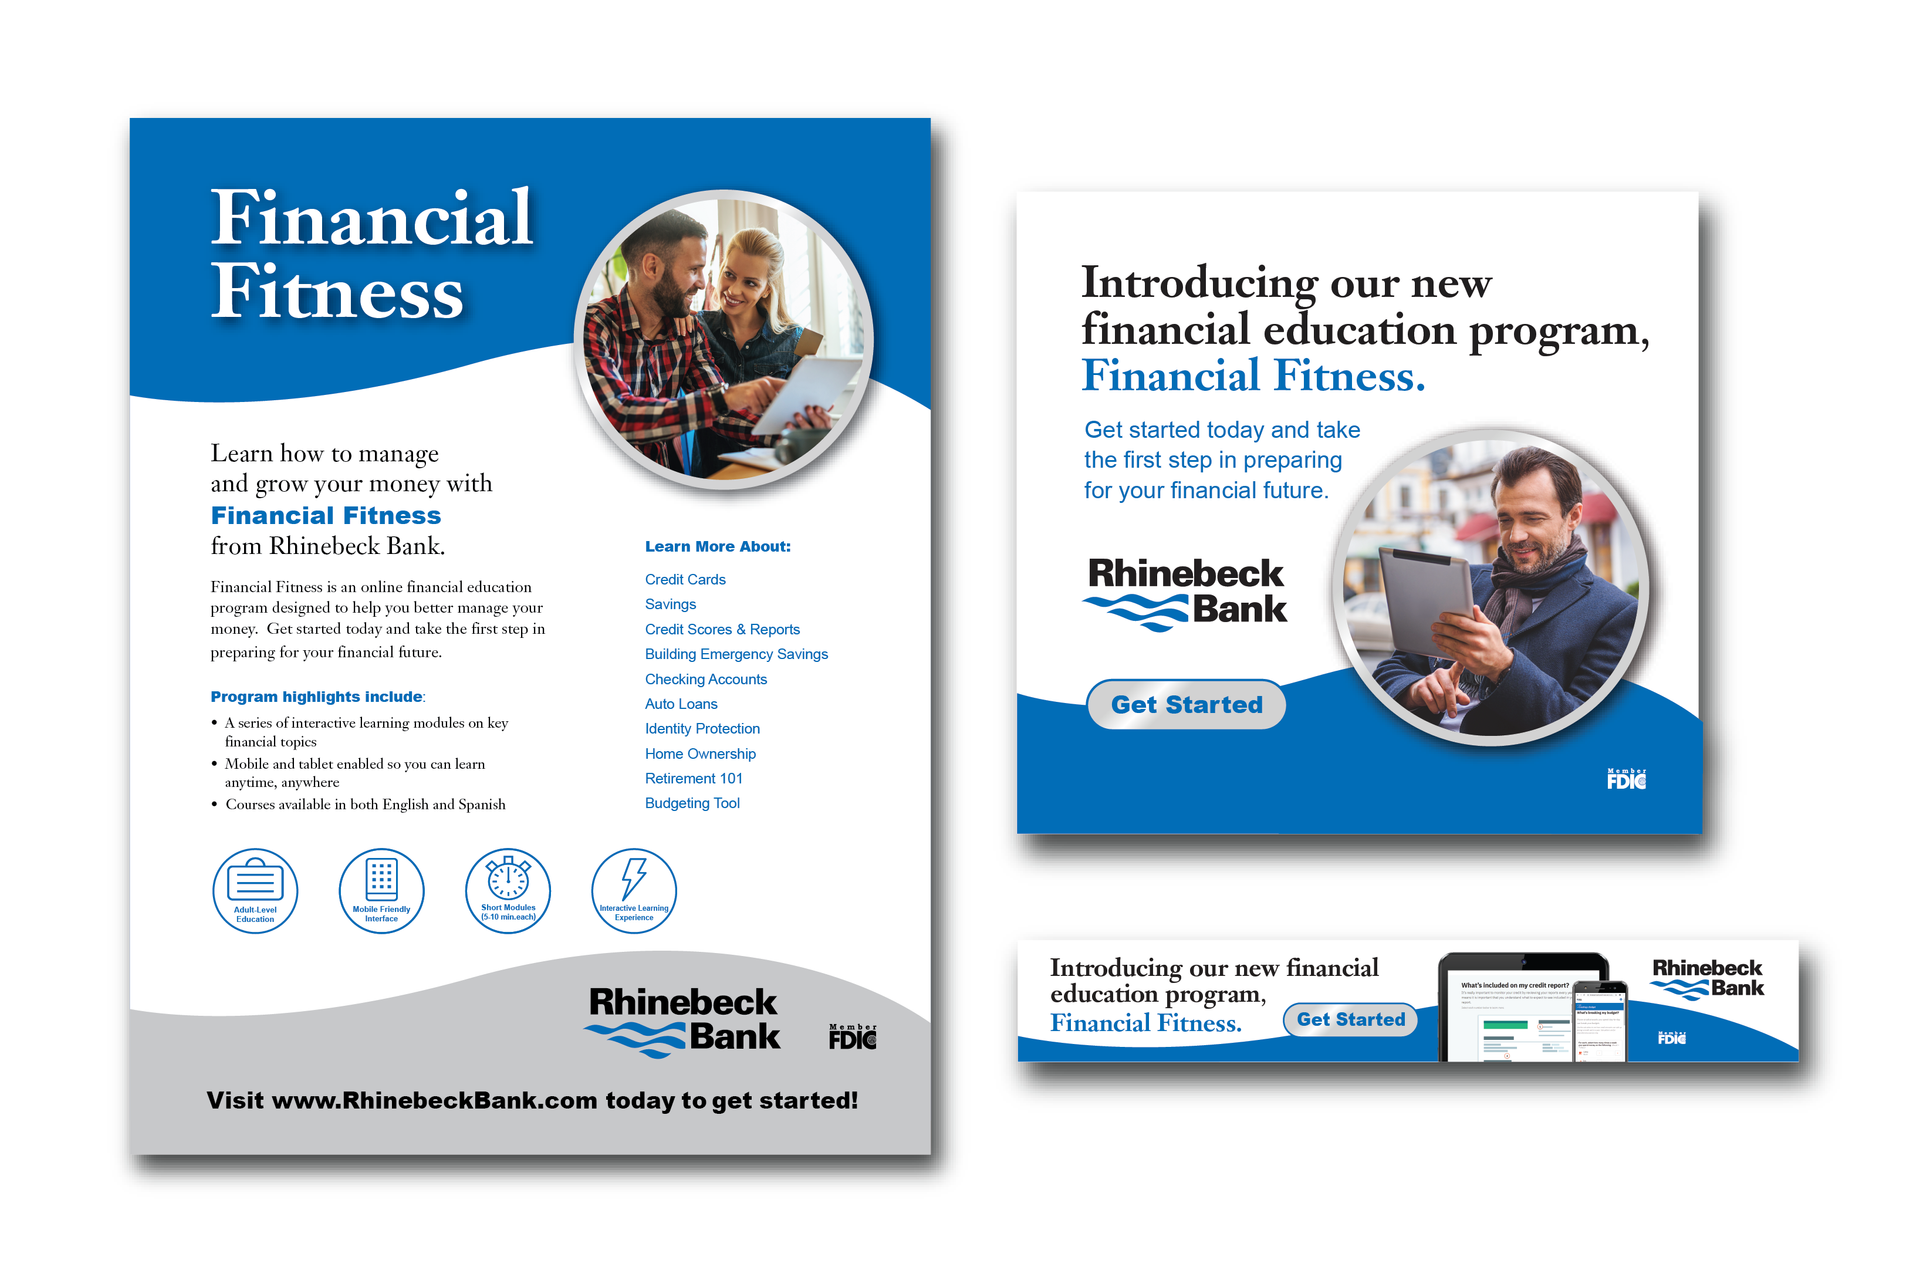 RB-_FinancialFitness_Campaign-01.png